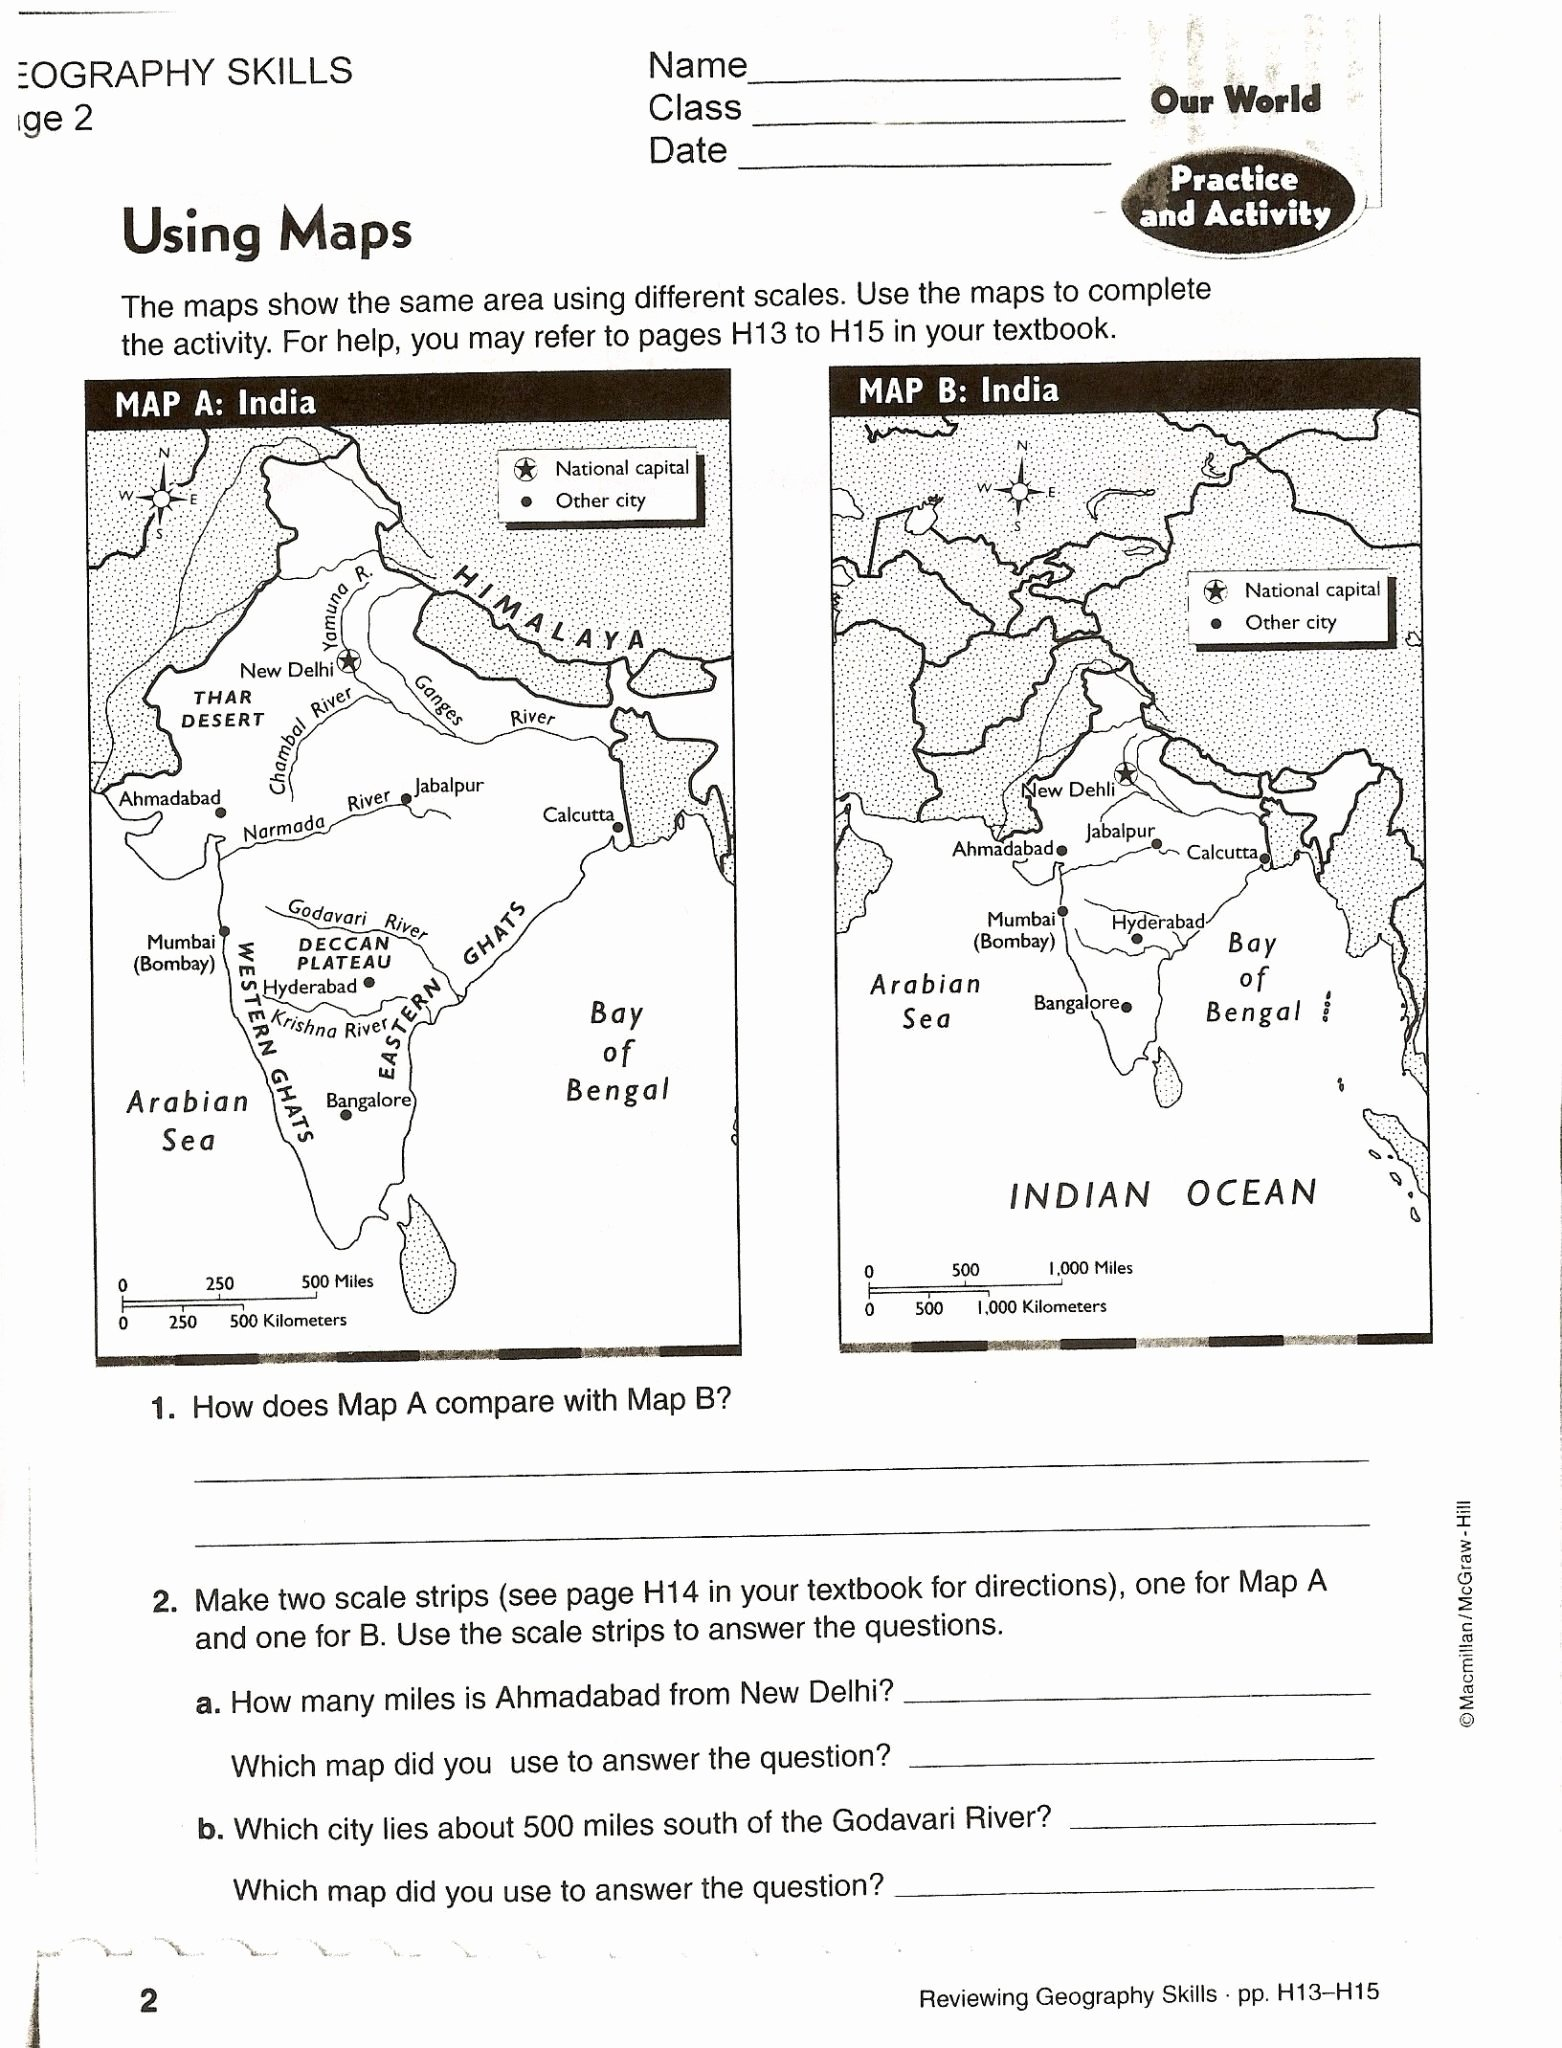 Map Skills Worksheets 6th Grade Printable Map Skills Worksheets for Print Science 6th Grade to Free